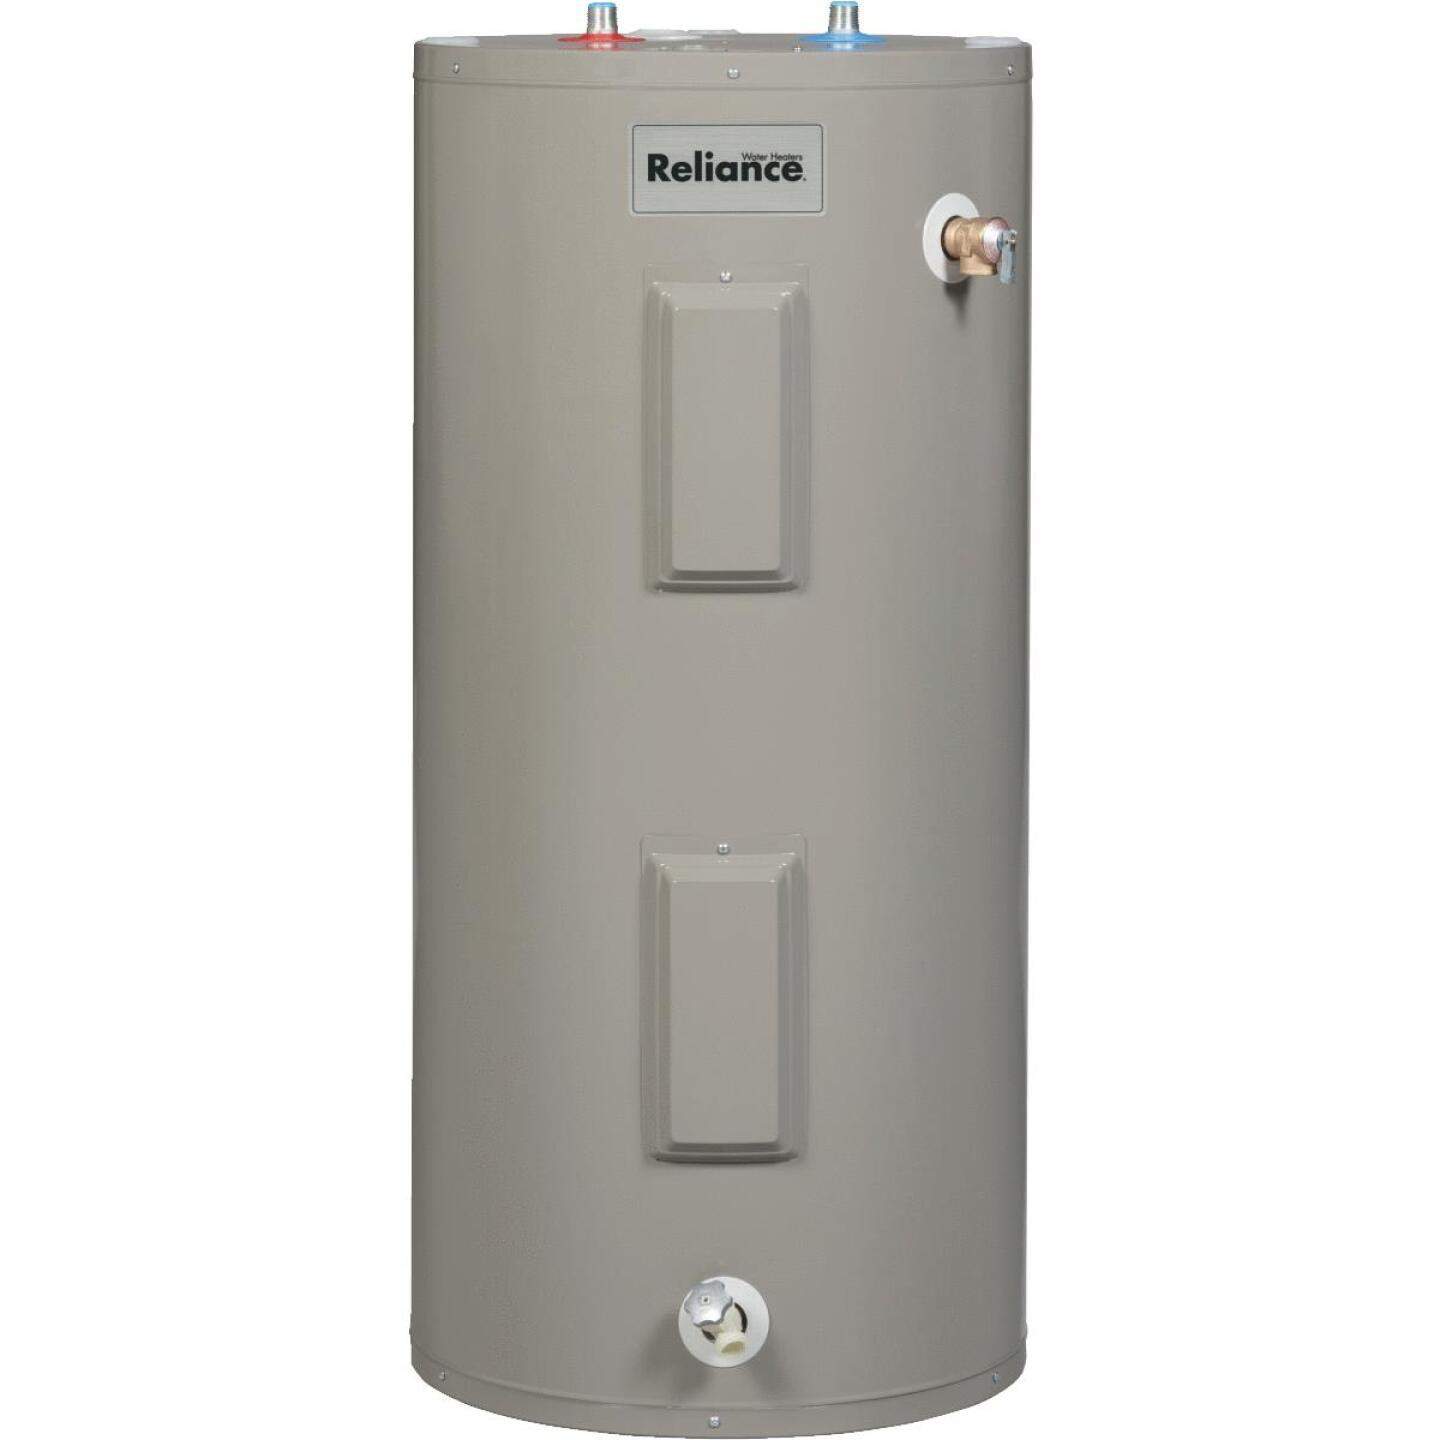 Reliance 50 Gal. Medium 6yr 4500/4500W Elements Electric Water Heater Image 1